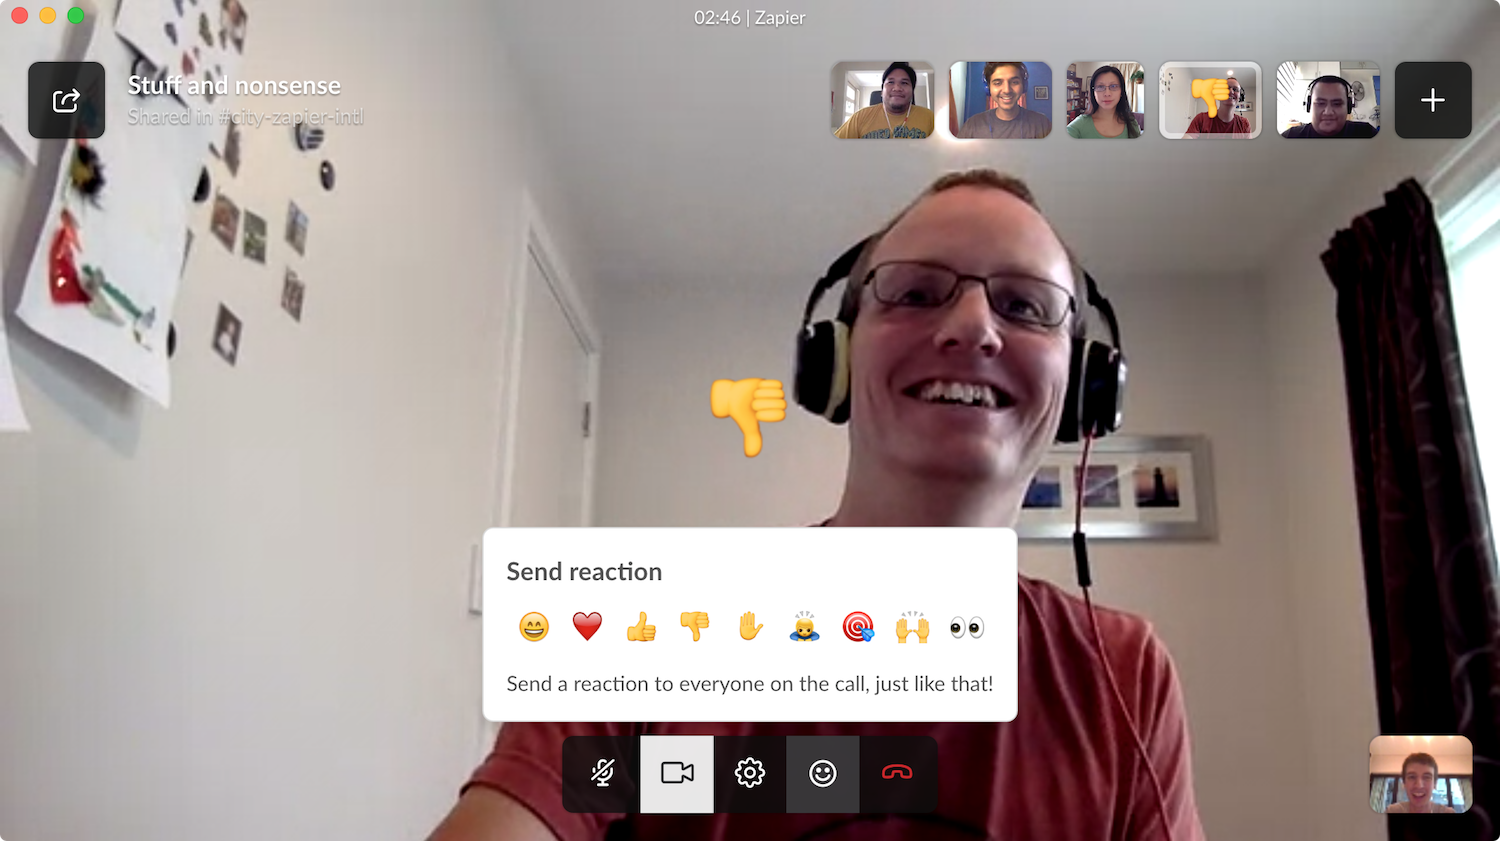 Video conference with your teammates easily through Slack